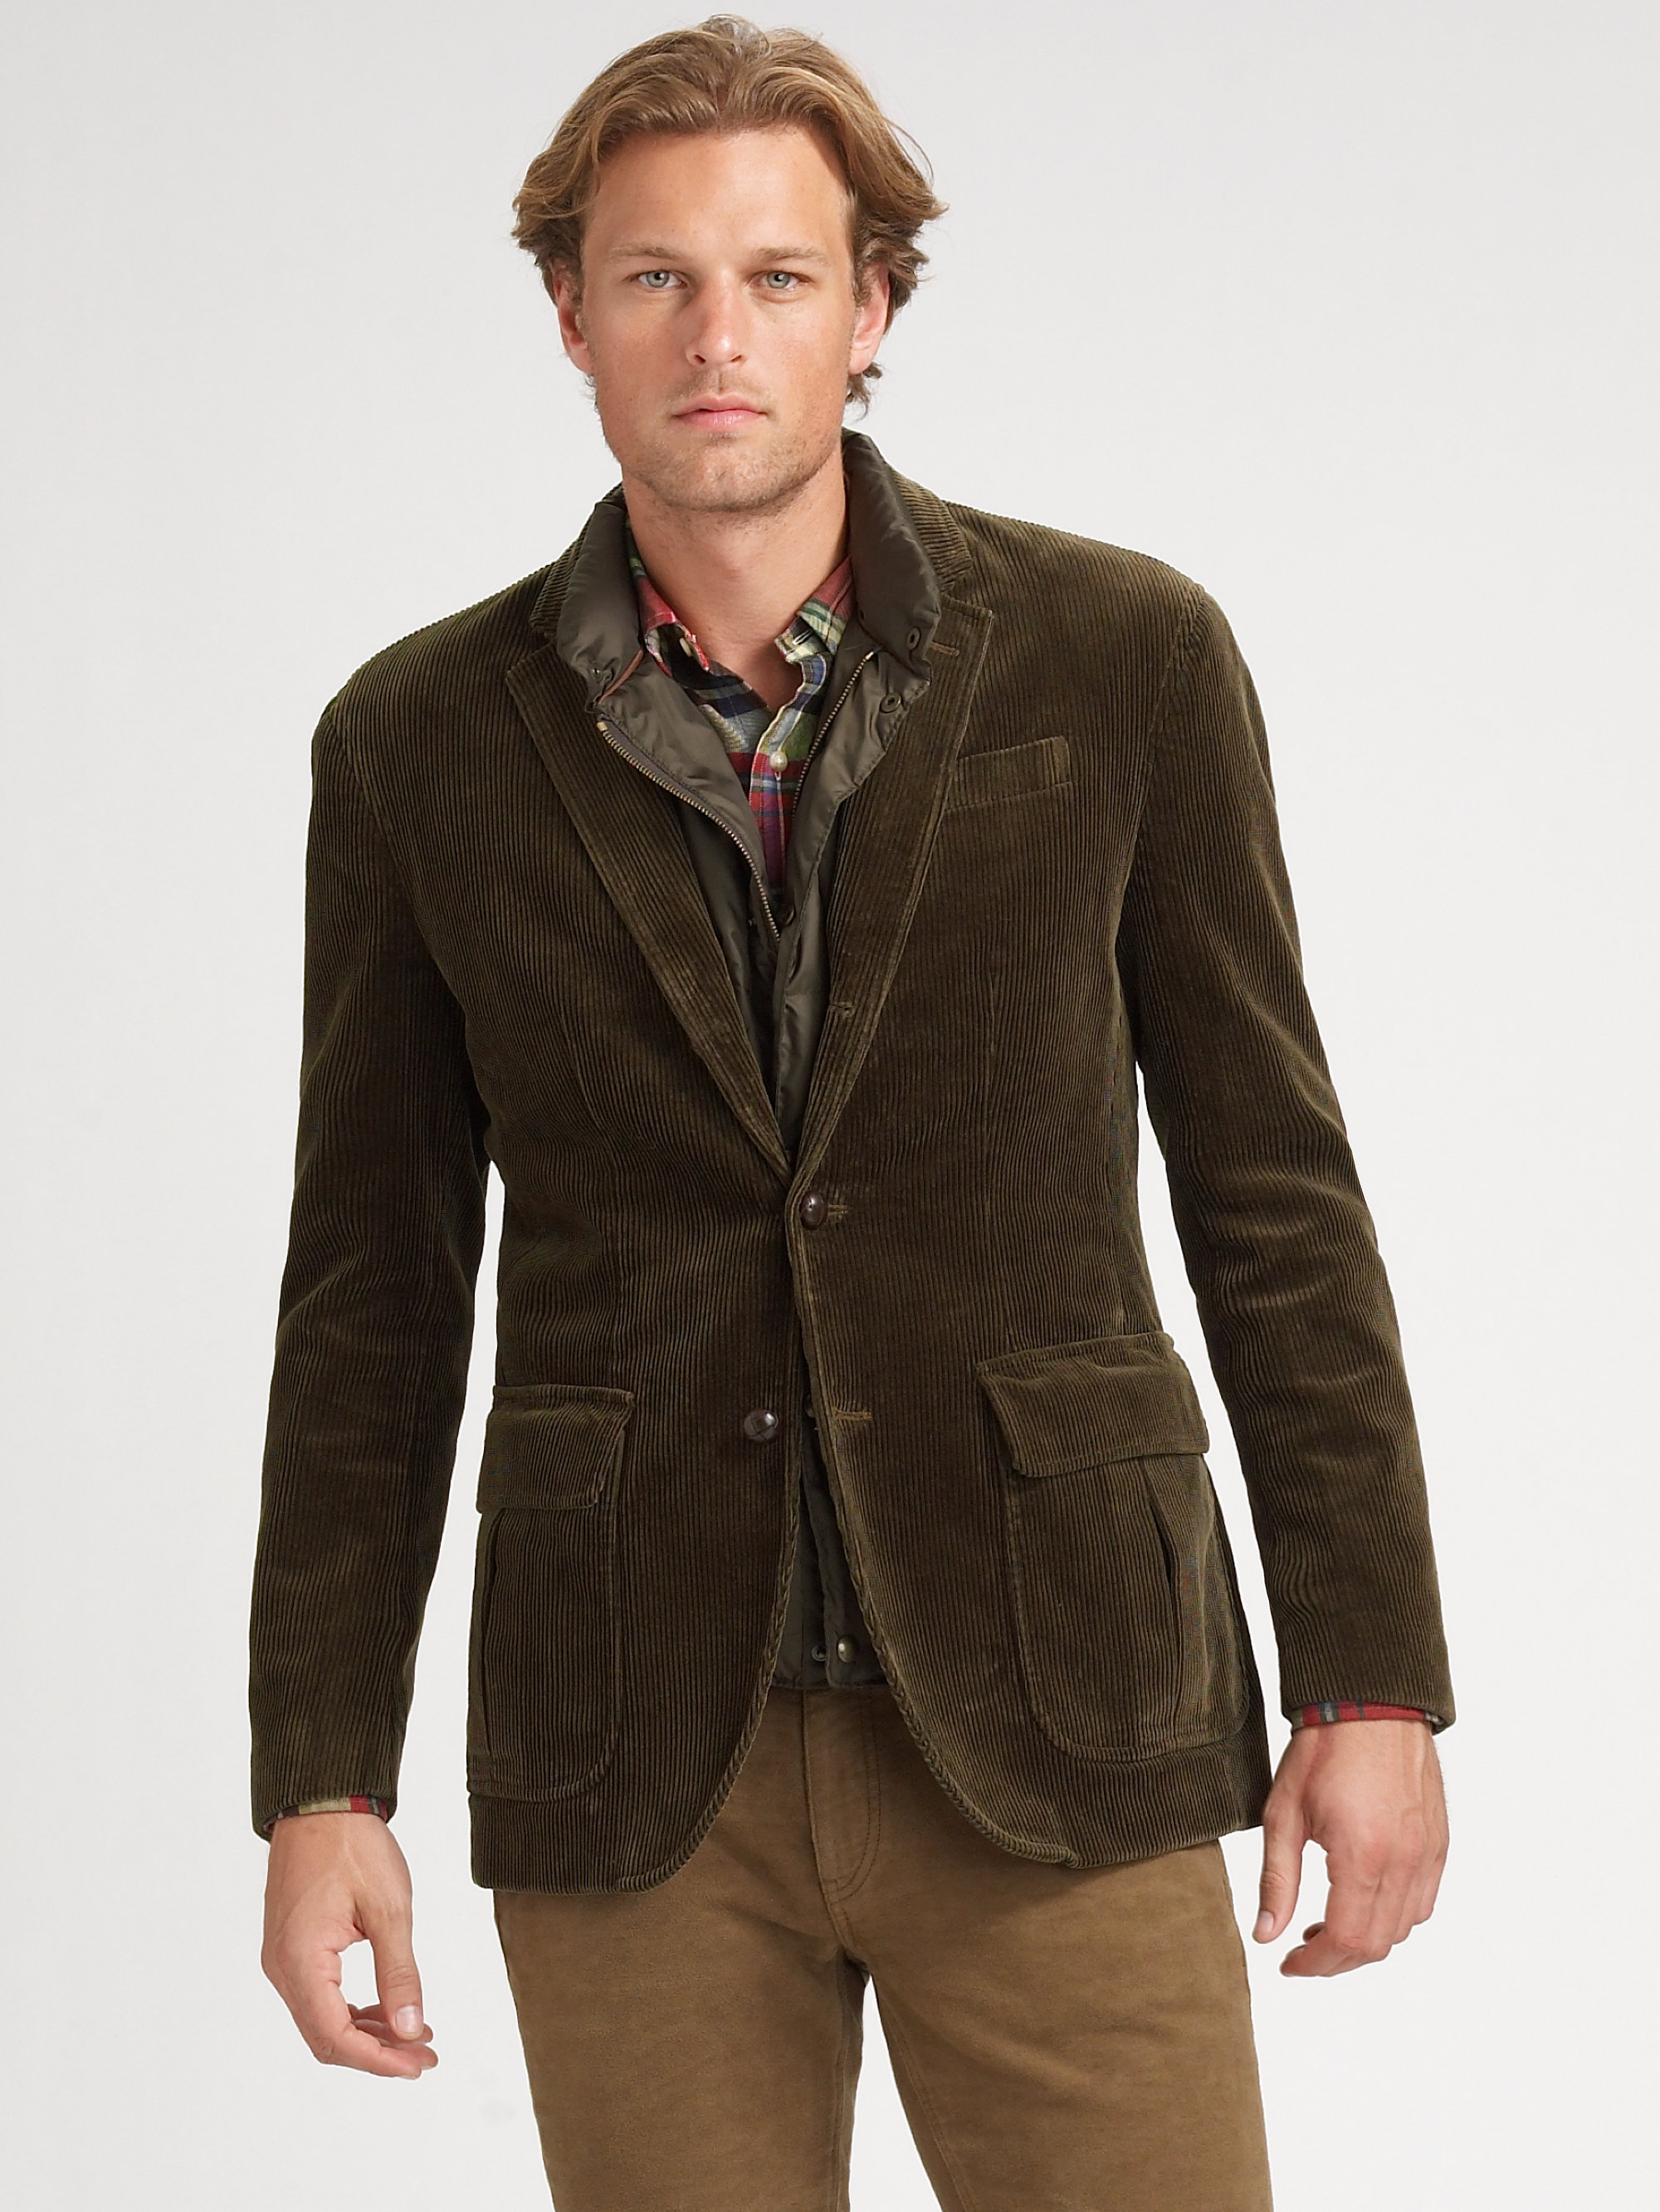 Polo ralph lauren Corduroy Sportcoat Vest in Natural for Men | Lyst